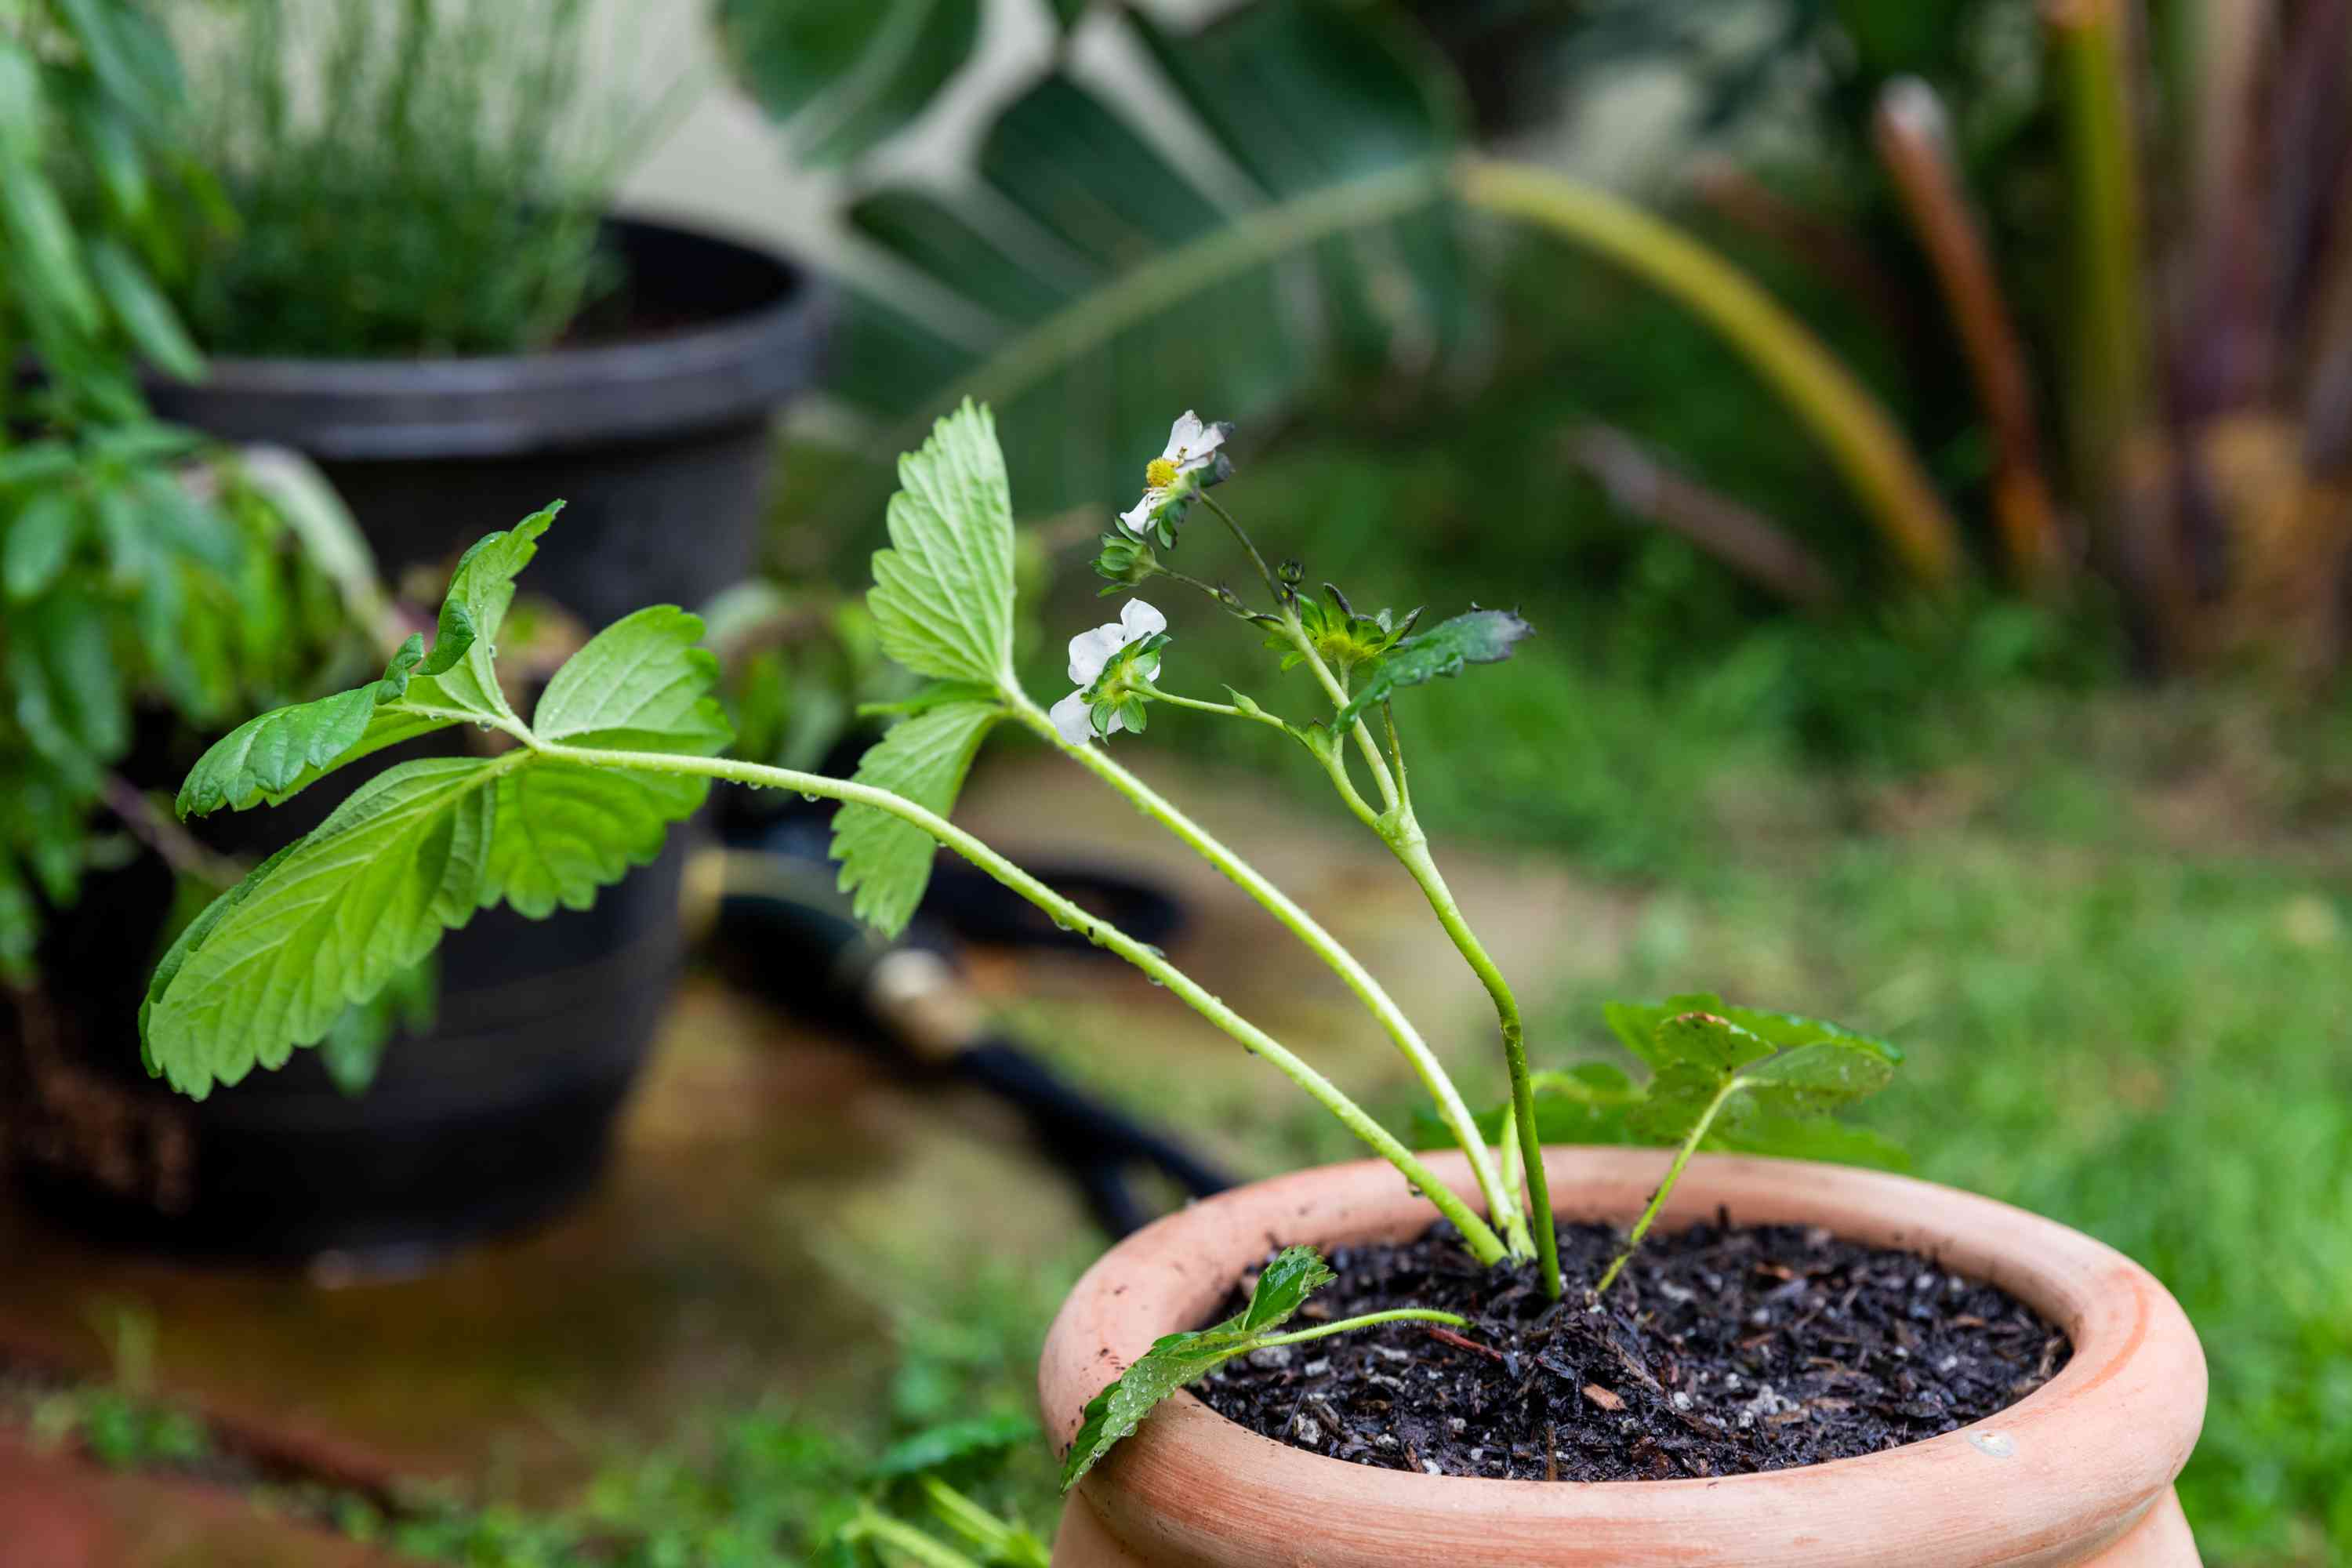 Strawberry plant with small white flowers potted in ceramic pot